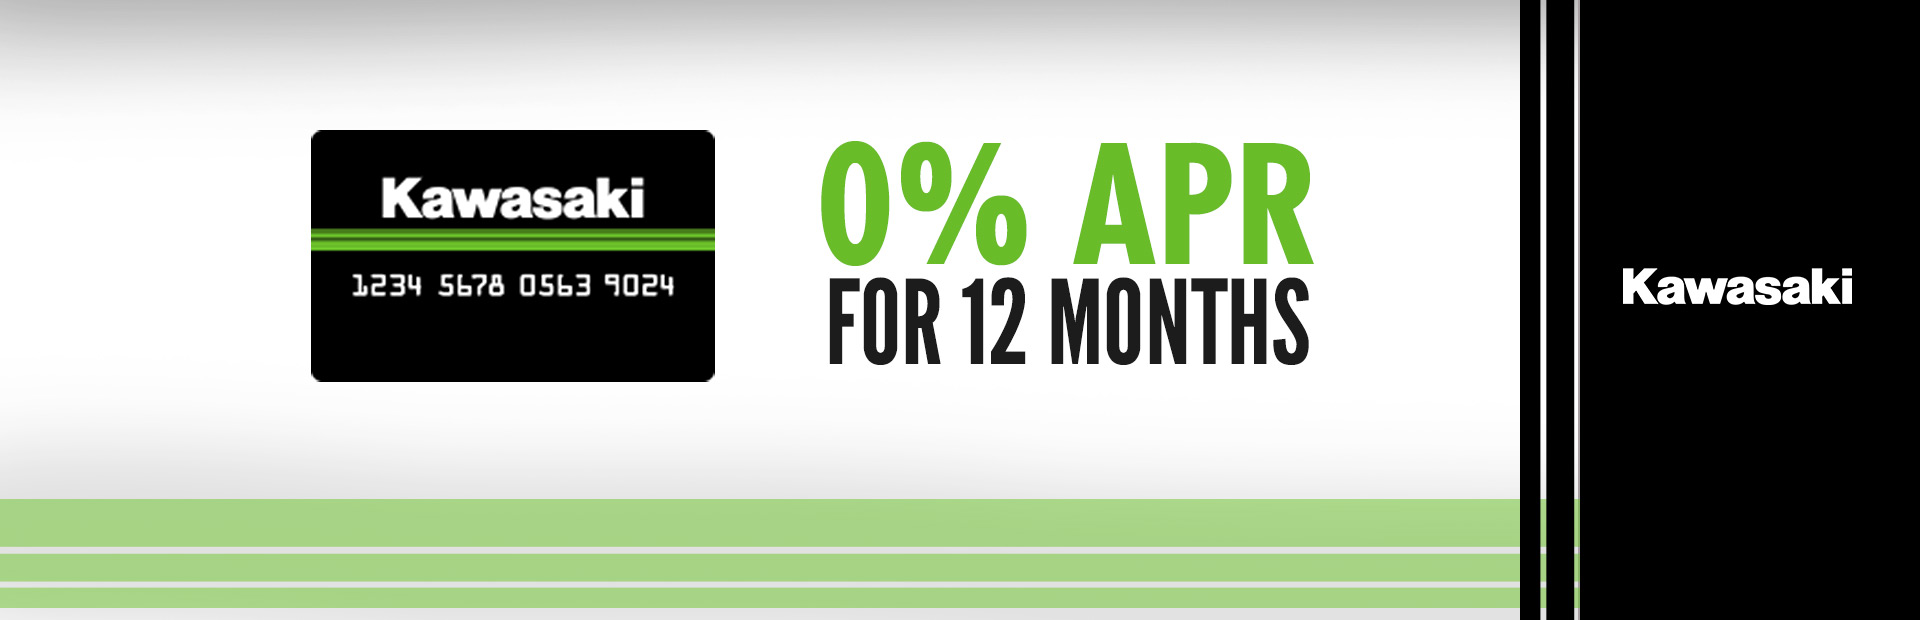 Kawasaki: Kawasaki Card Offer 0% APR for 12 Months